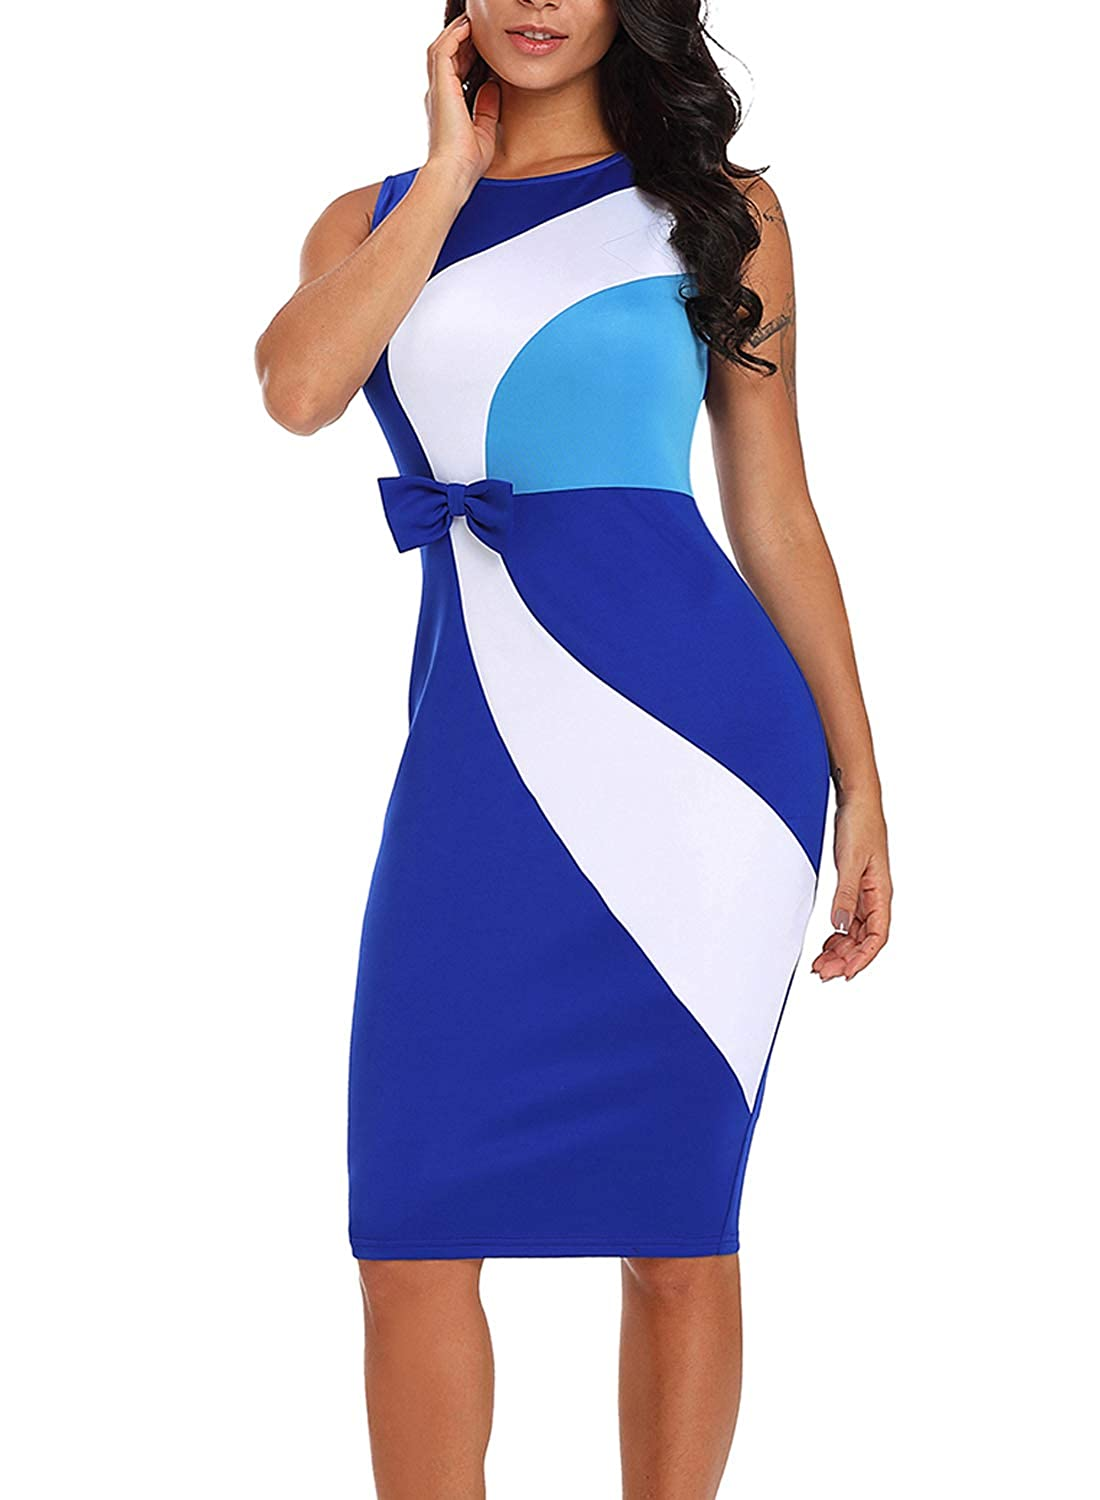 6d50c2c02 Lovezesent Women Bodycon Midi Dress Summer Sleeveless Color Block Sheath  Office Dress for Work with Bow Blue Small at Amazon Women's Clothing store: